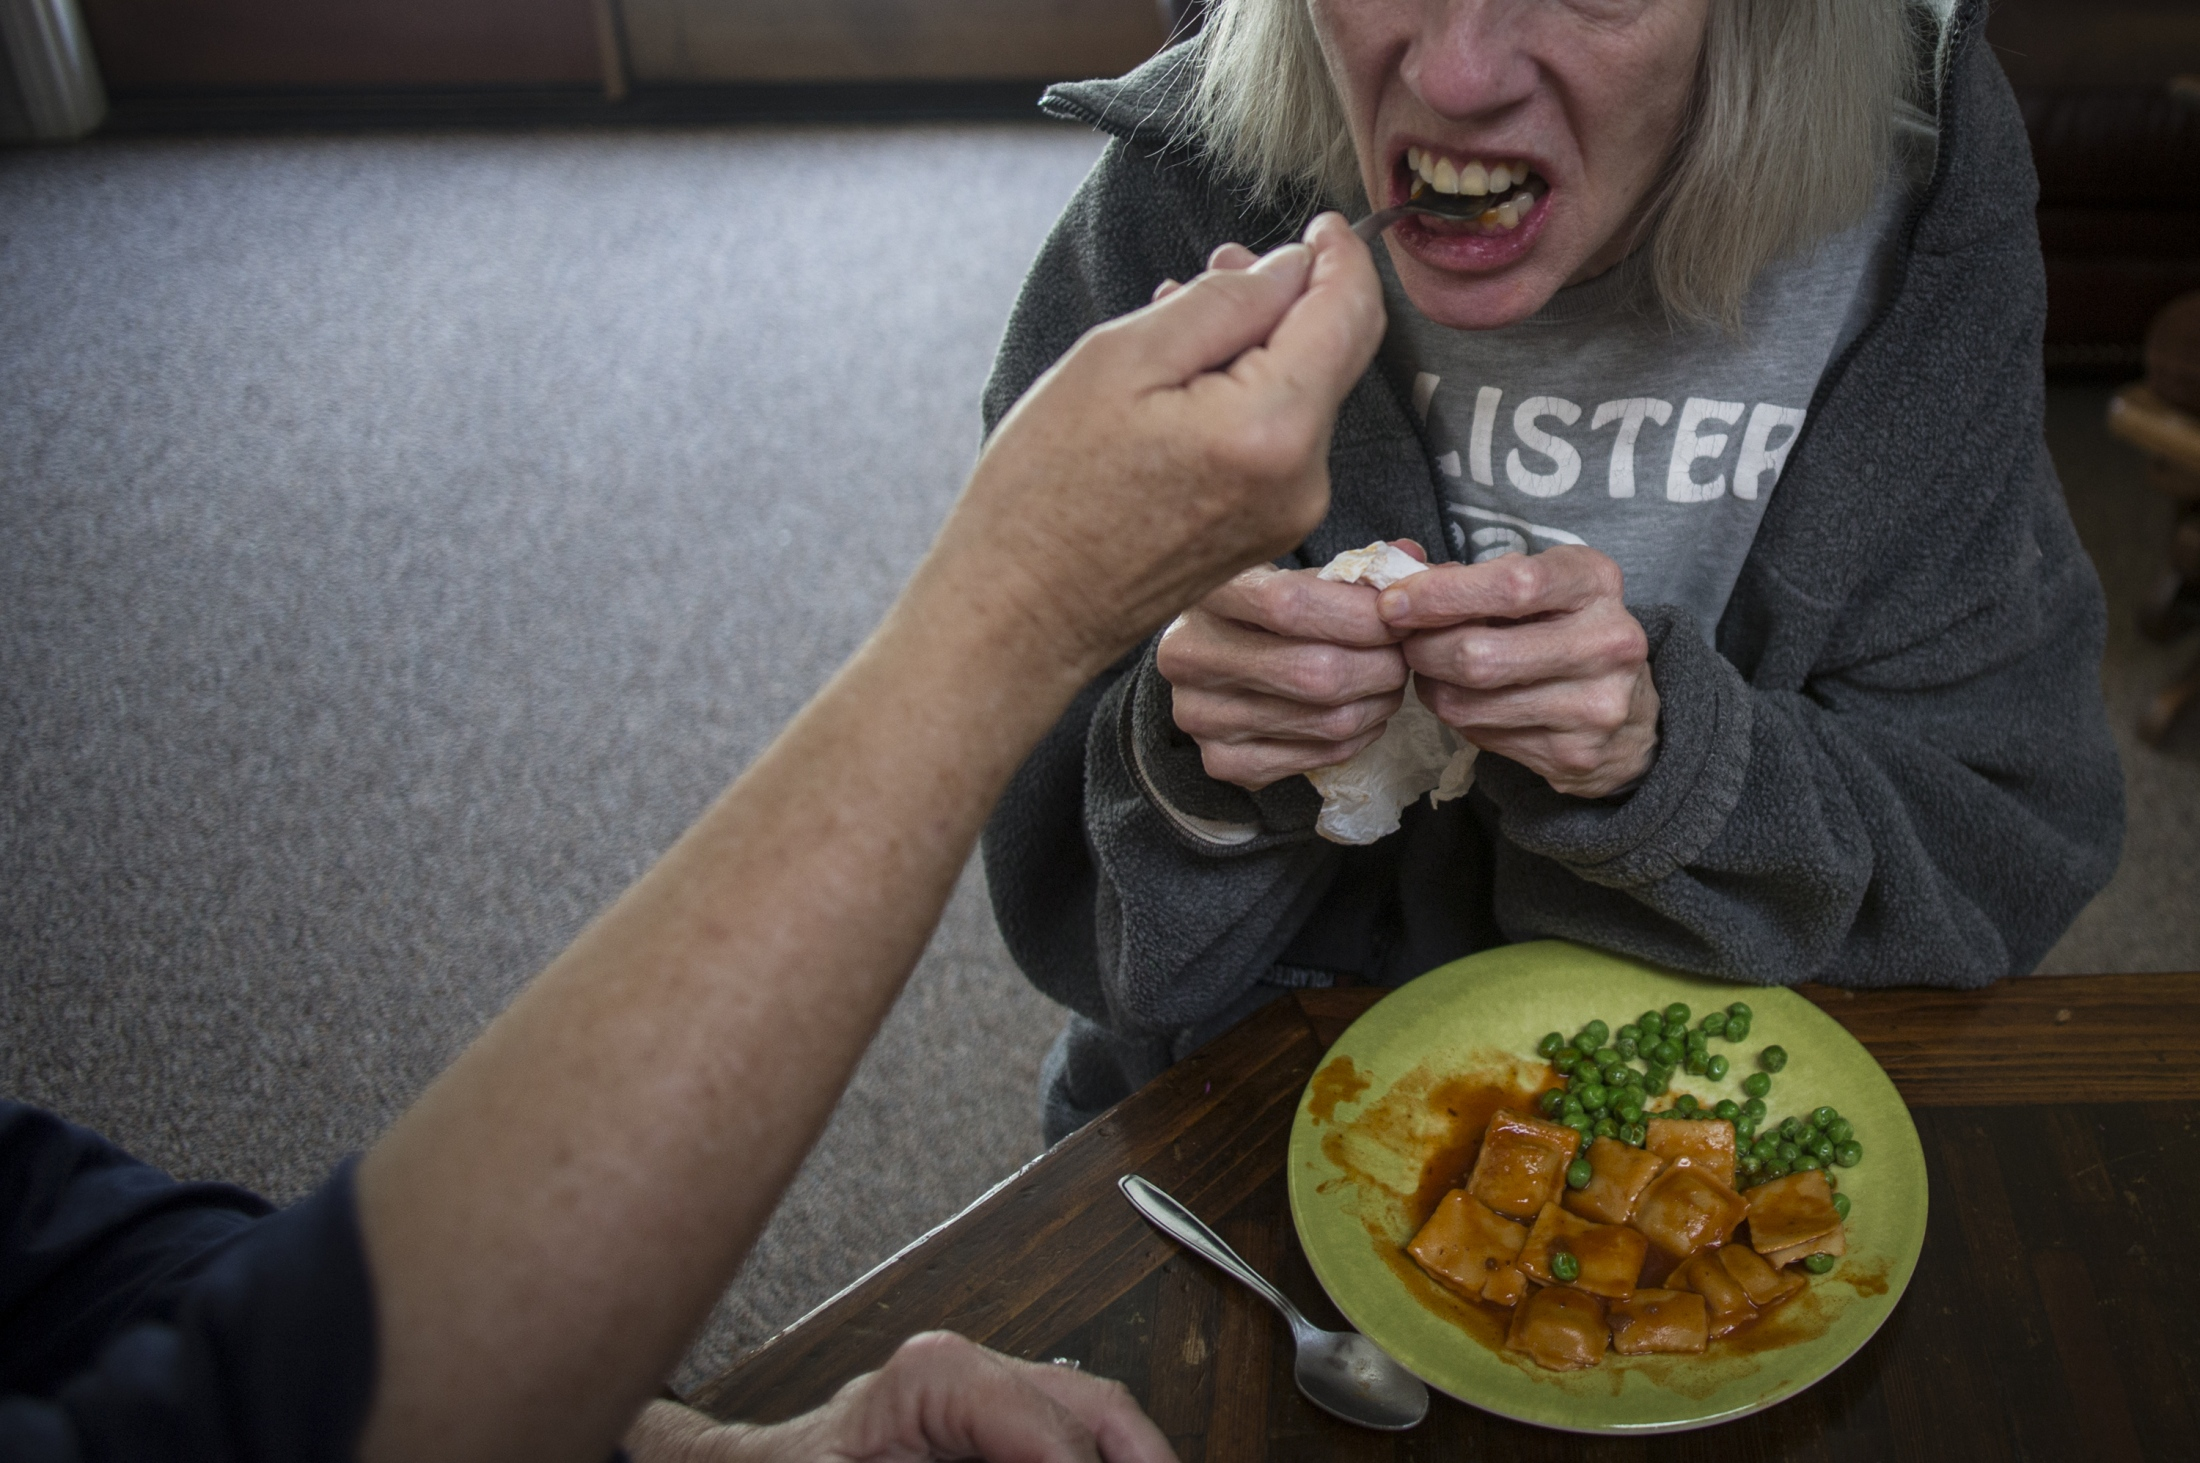 """When her sisters visit, they help to feed her to ensure she gets needed nourishment. Often times Nancy will not eat with a utensil resorting to her hands instead, which bothers the elderly folks at the home. They make remarks such as """"look at her"""" as they shake their heads in disapproval. Though most of the other residents have dementia as well, none of them are as incapable of taking care of themselves as Nancy."""